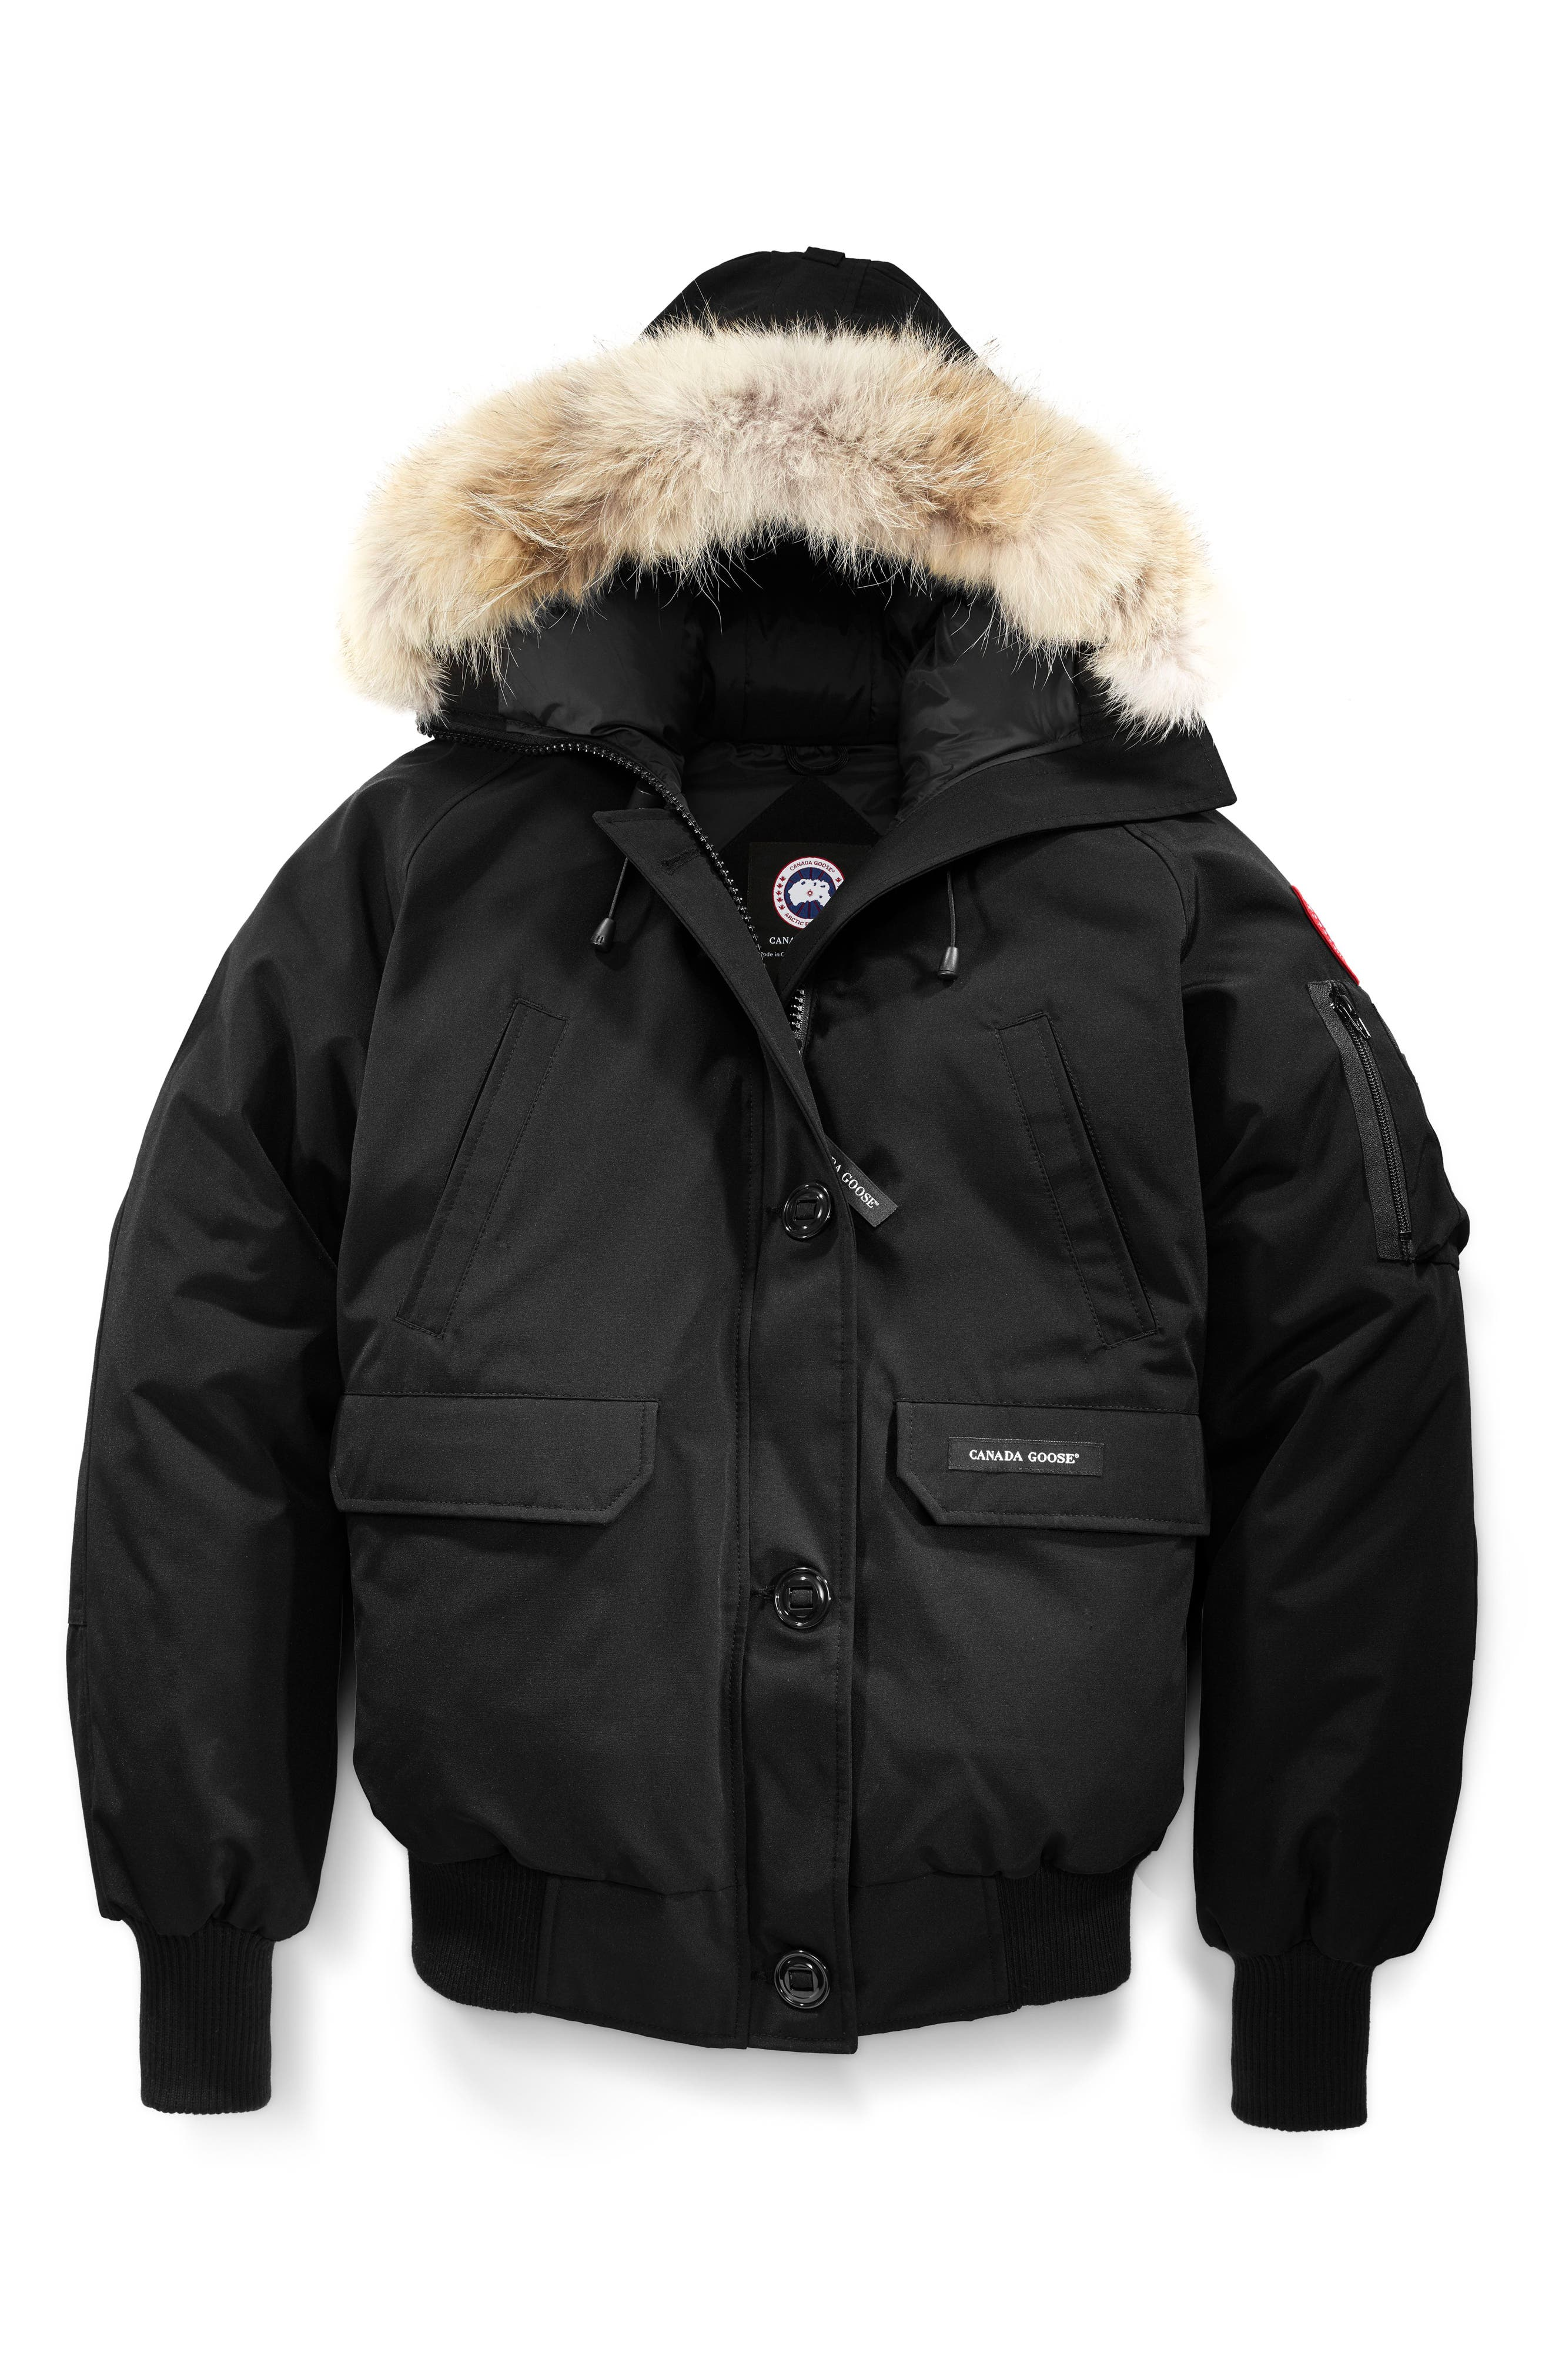 CANADA GOOSE, Chilliwack Fusion Fit 625 Fill Power Down Bomber Jacket with Genuine Coyote Fur Trim, Alternate thumbnail 4, color, BLACK